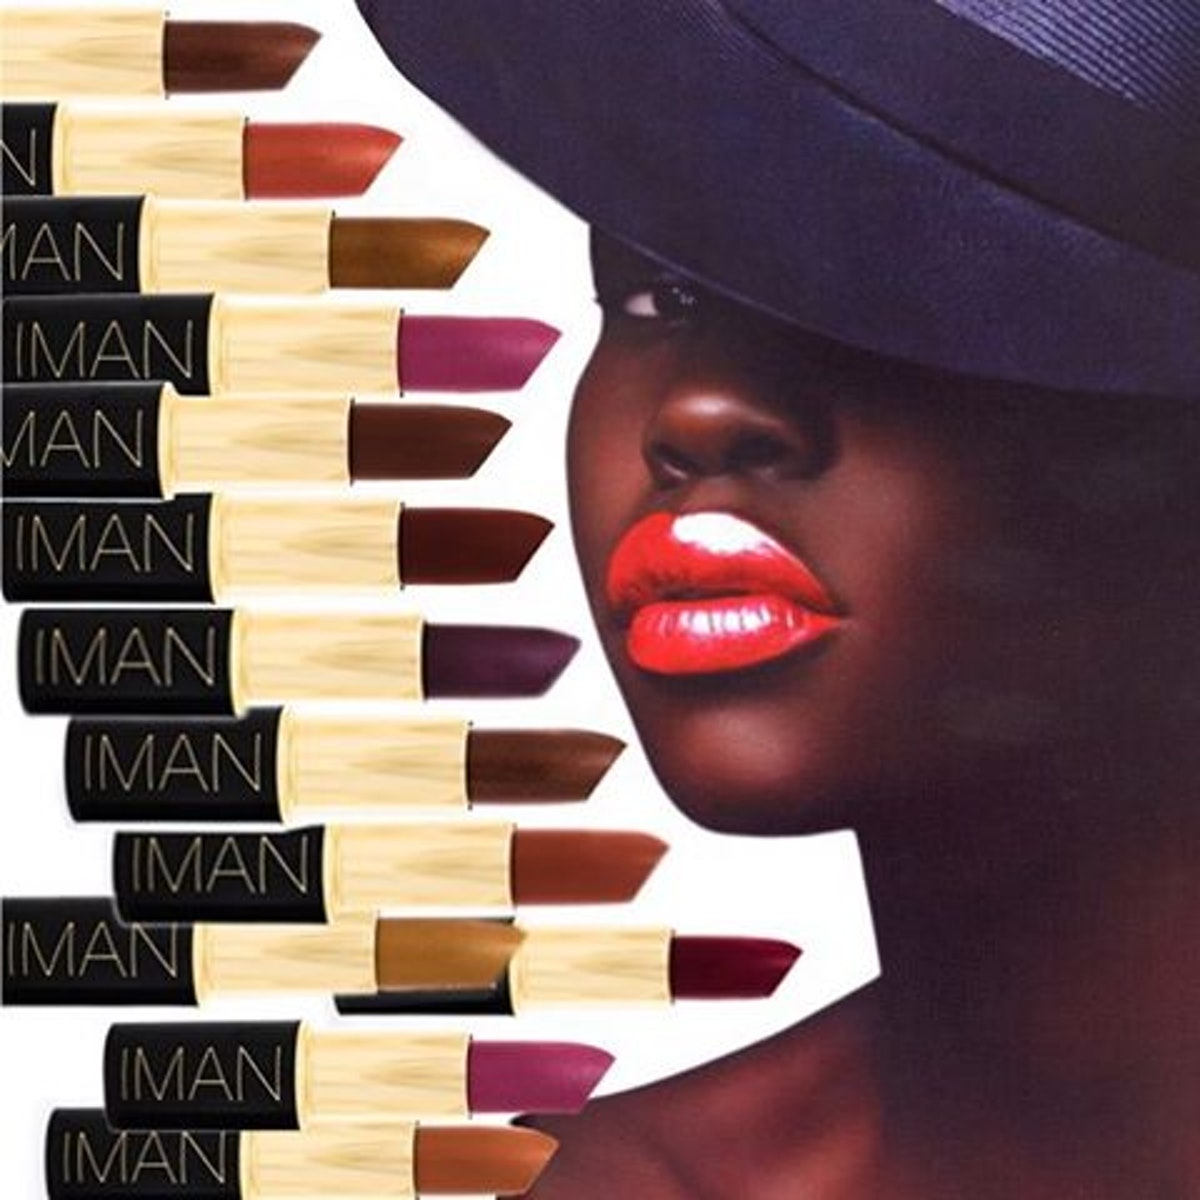 If Iman can pull off a shameless plug, so can you.